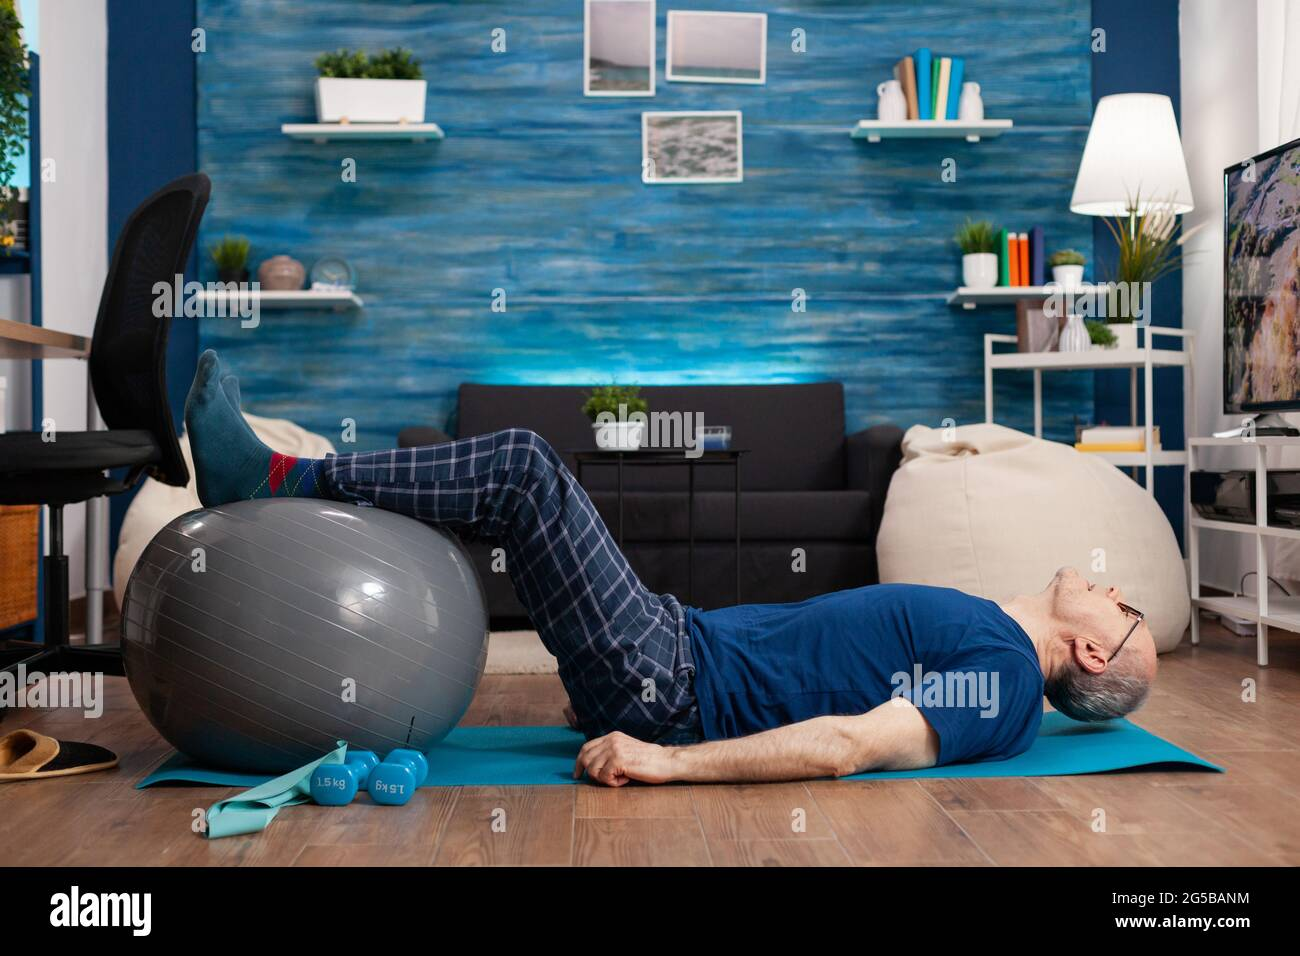 Retired senior sportman sitting on yoga mat practicing warming legs up exercises using swiss ball stretching abdominals muscles. Focused pensioner training body strength resistance in living room Stock Photo